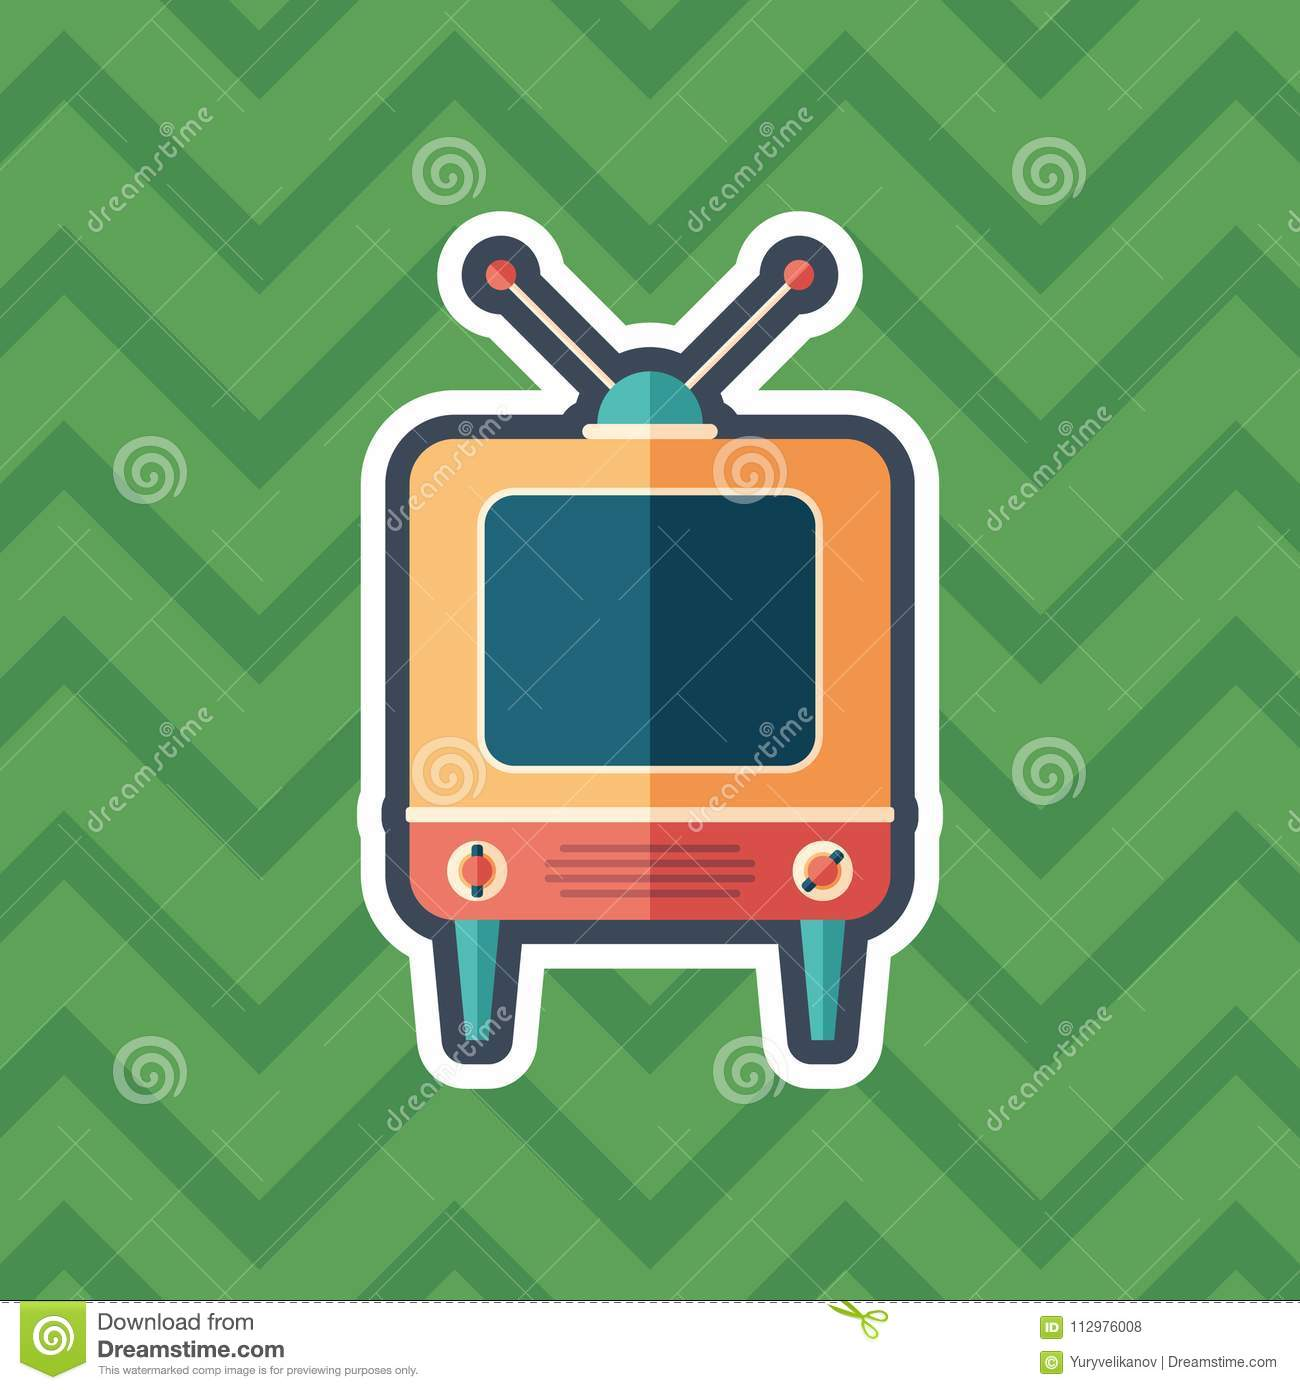 Retro television receiver sticker flat icon with color background.